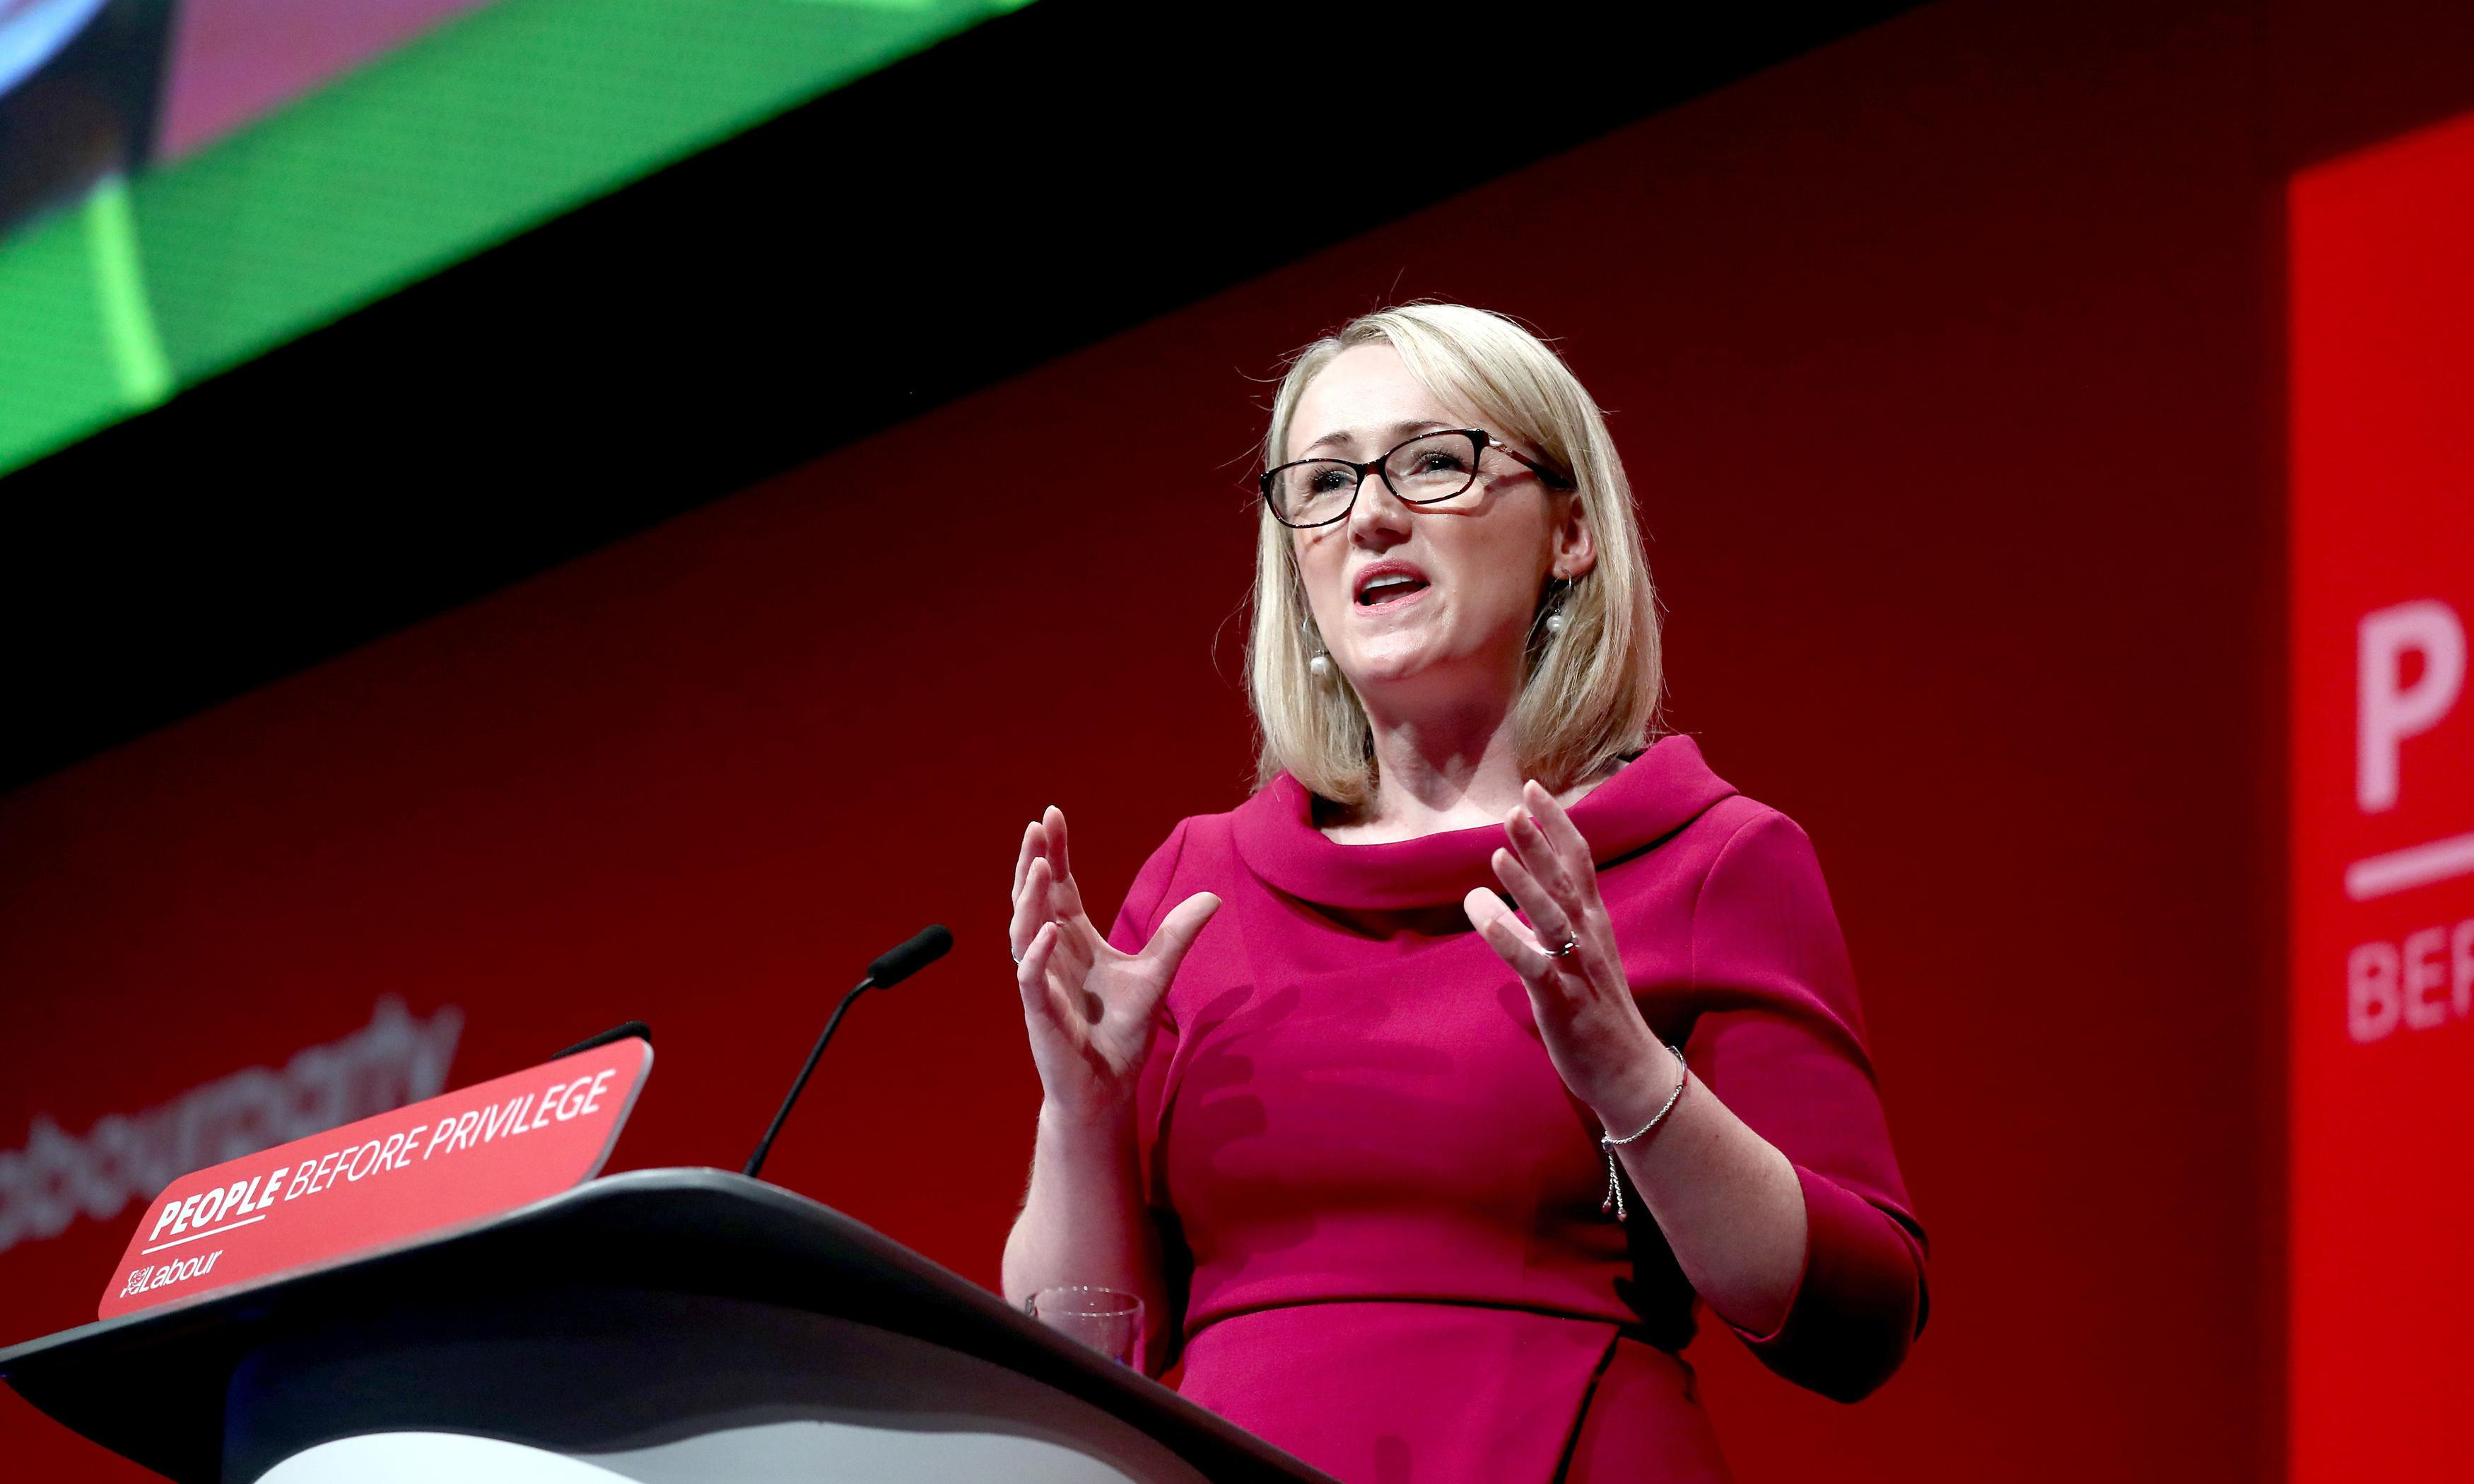 Labour set to commit to net zero emissions by 2030